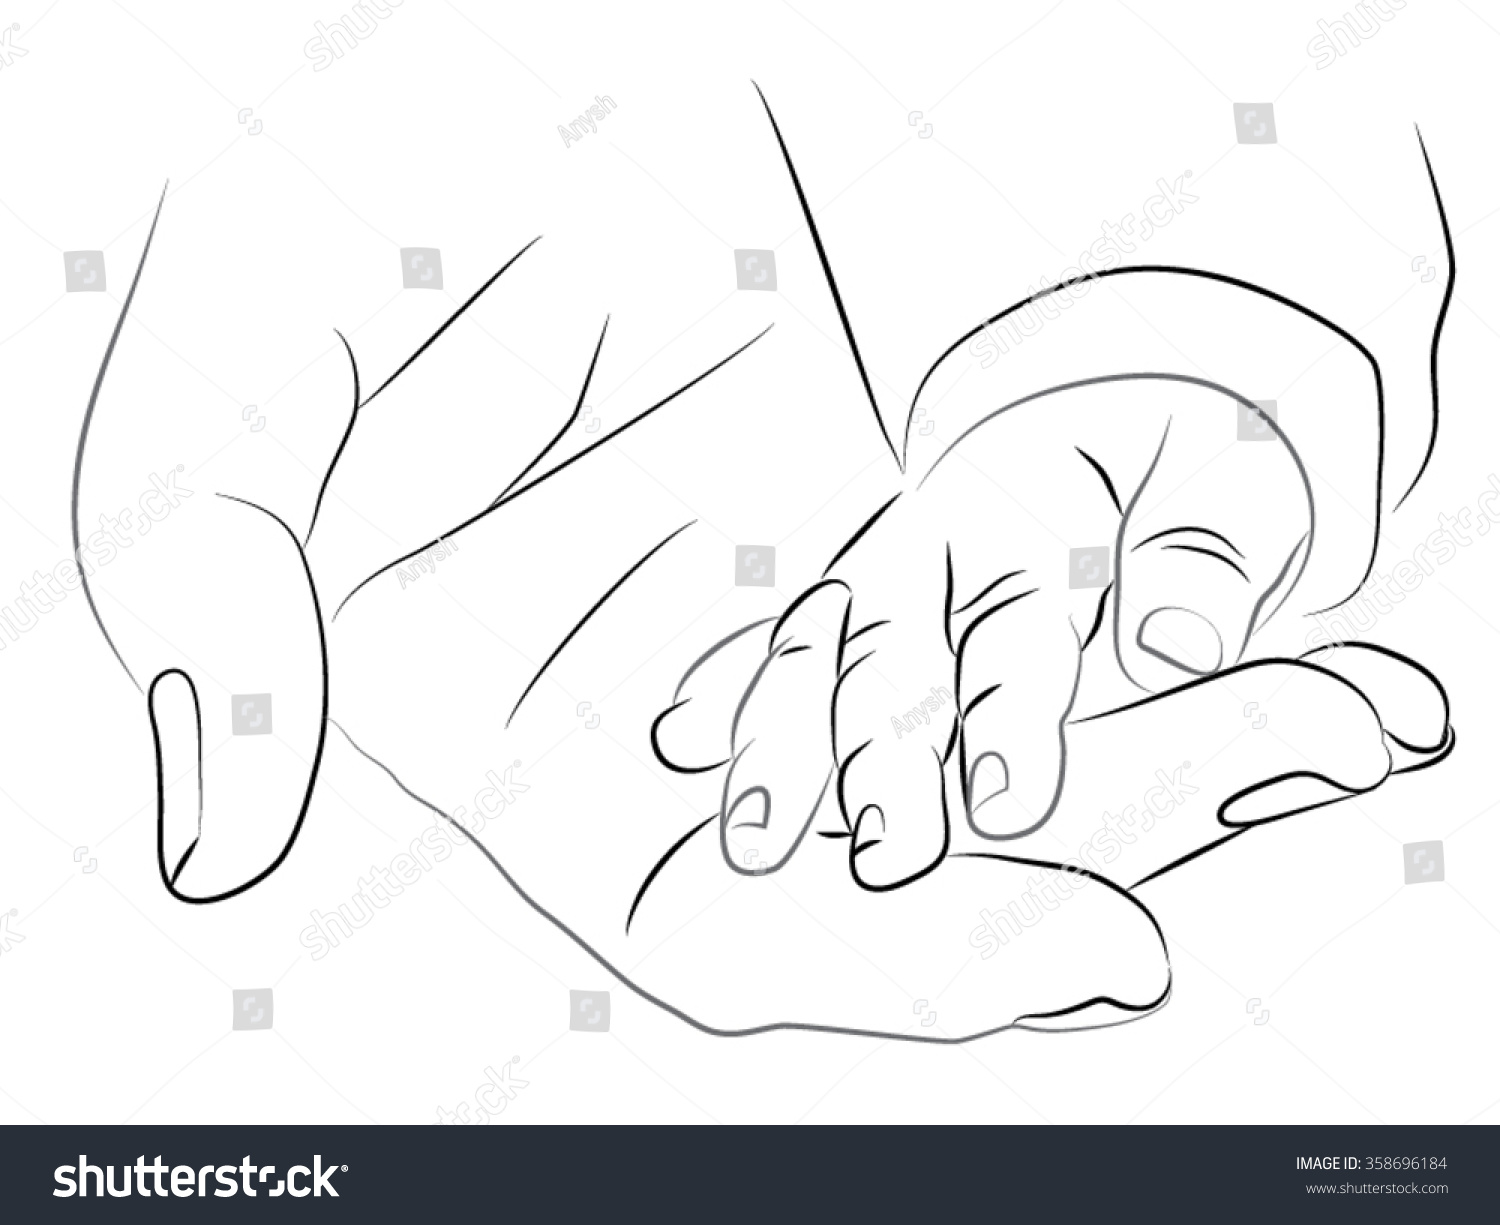 22d41d5e2 A woman holding a baby hand. Pencil black and white drawing. mother hand  holding.